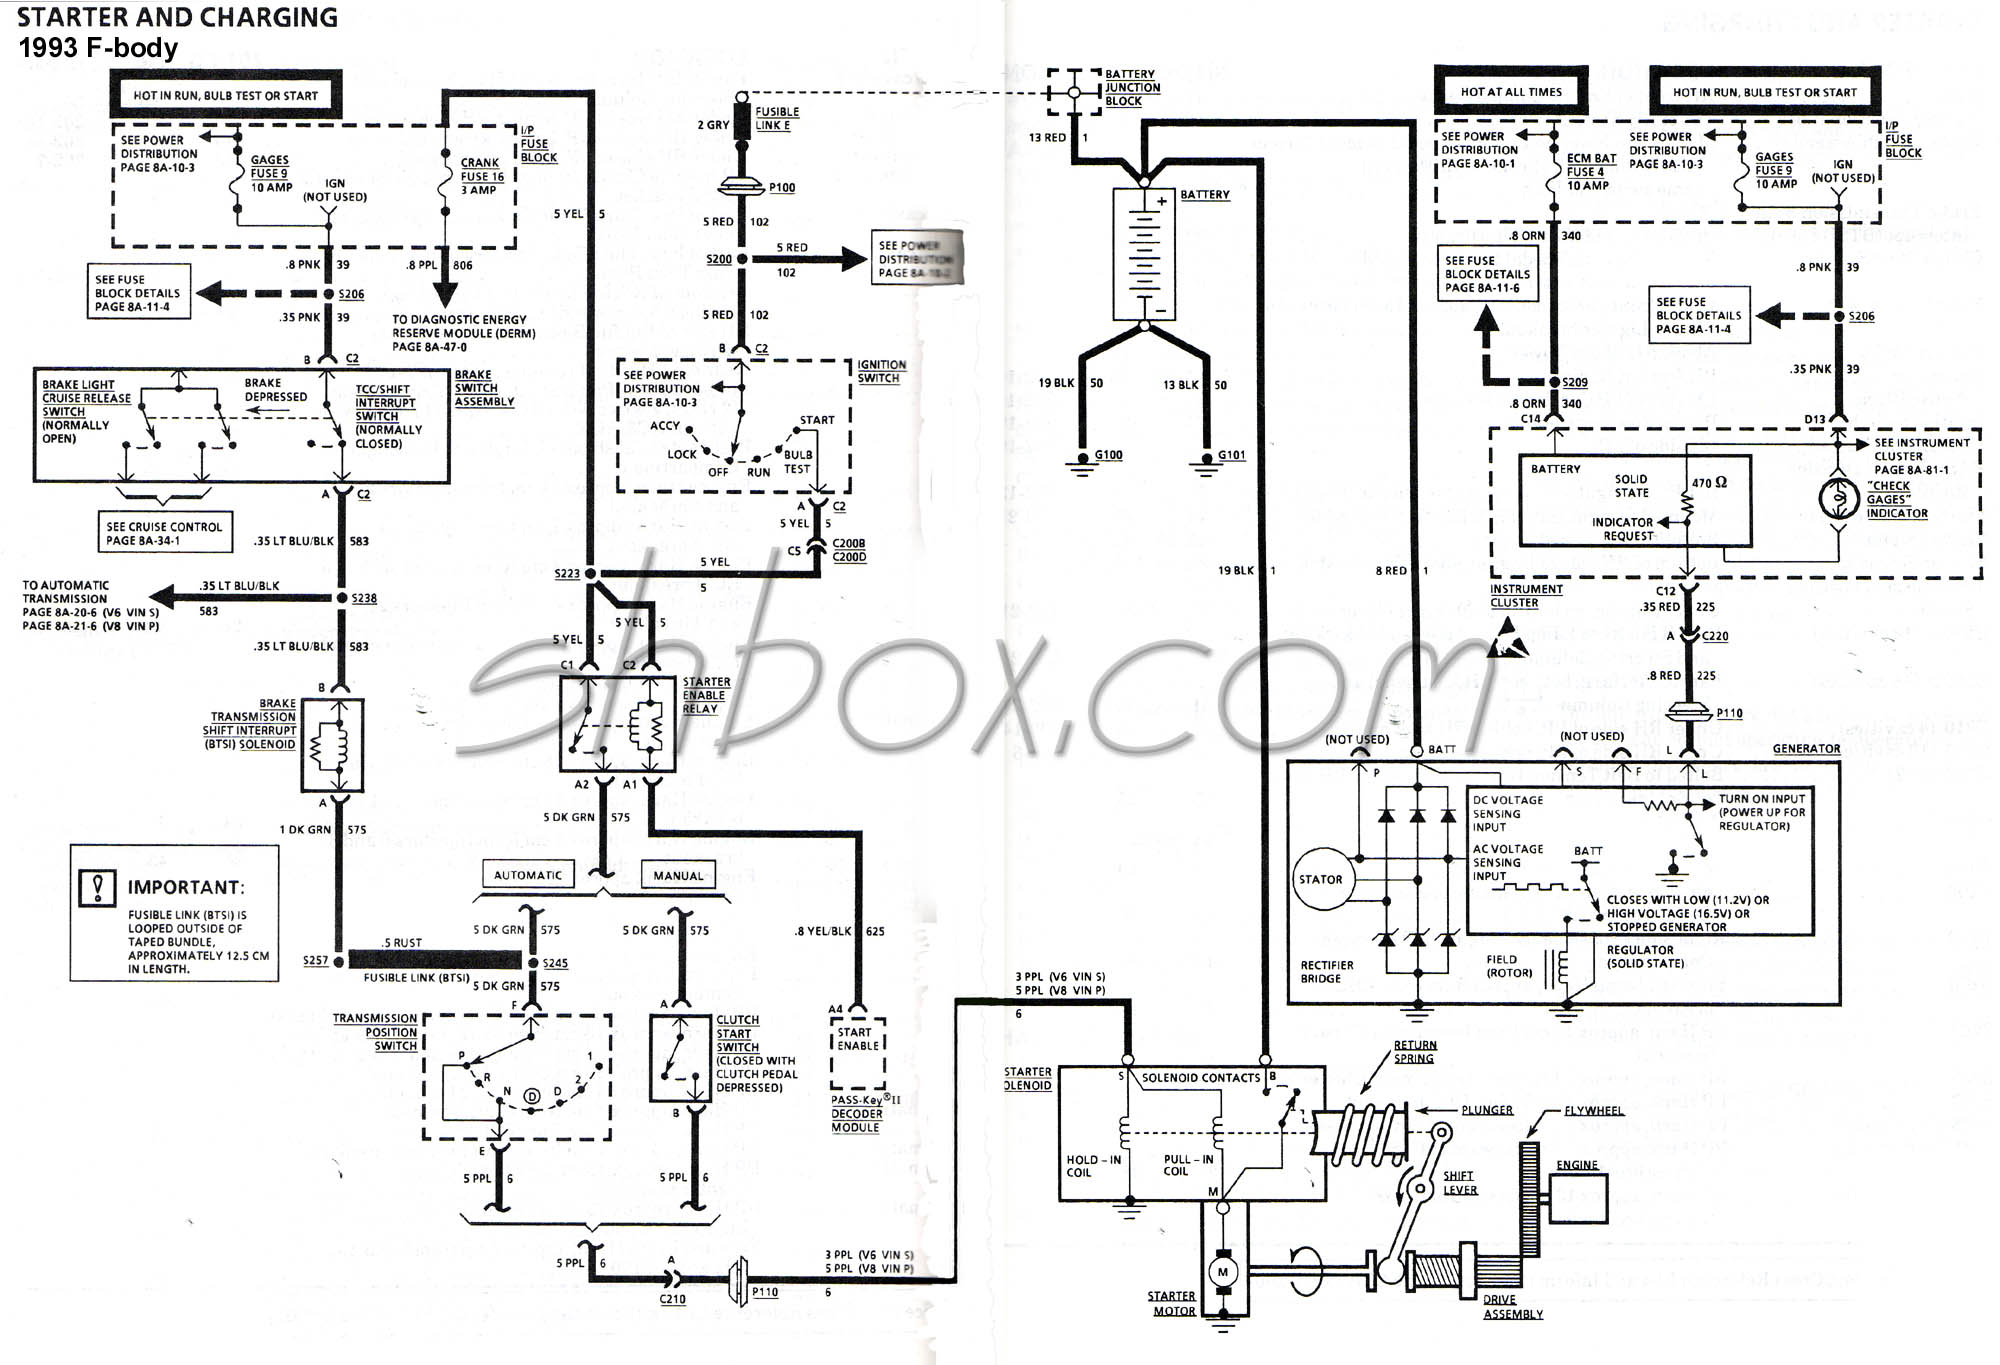 ... z31 alternator wiring diagram free download wiring diagram xwiaw z31  ecu wiring diagram free download wiring